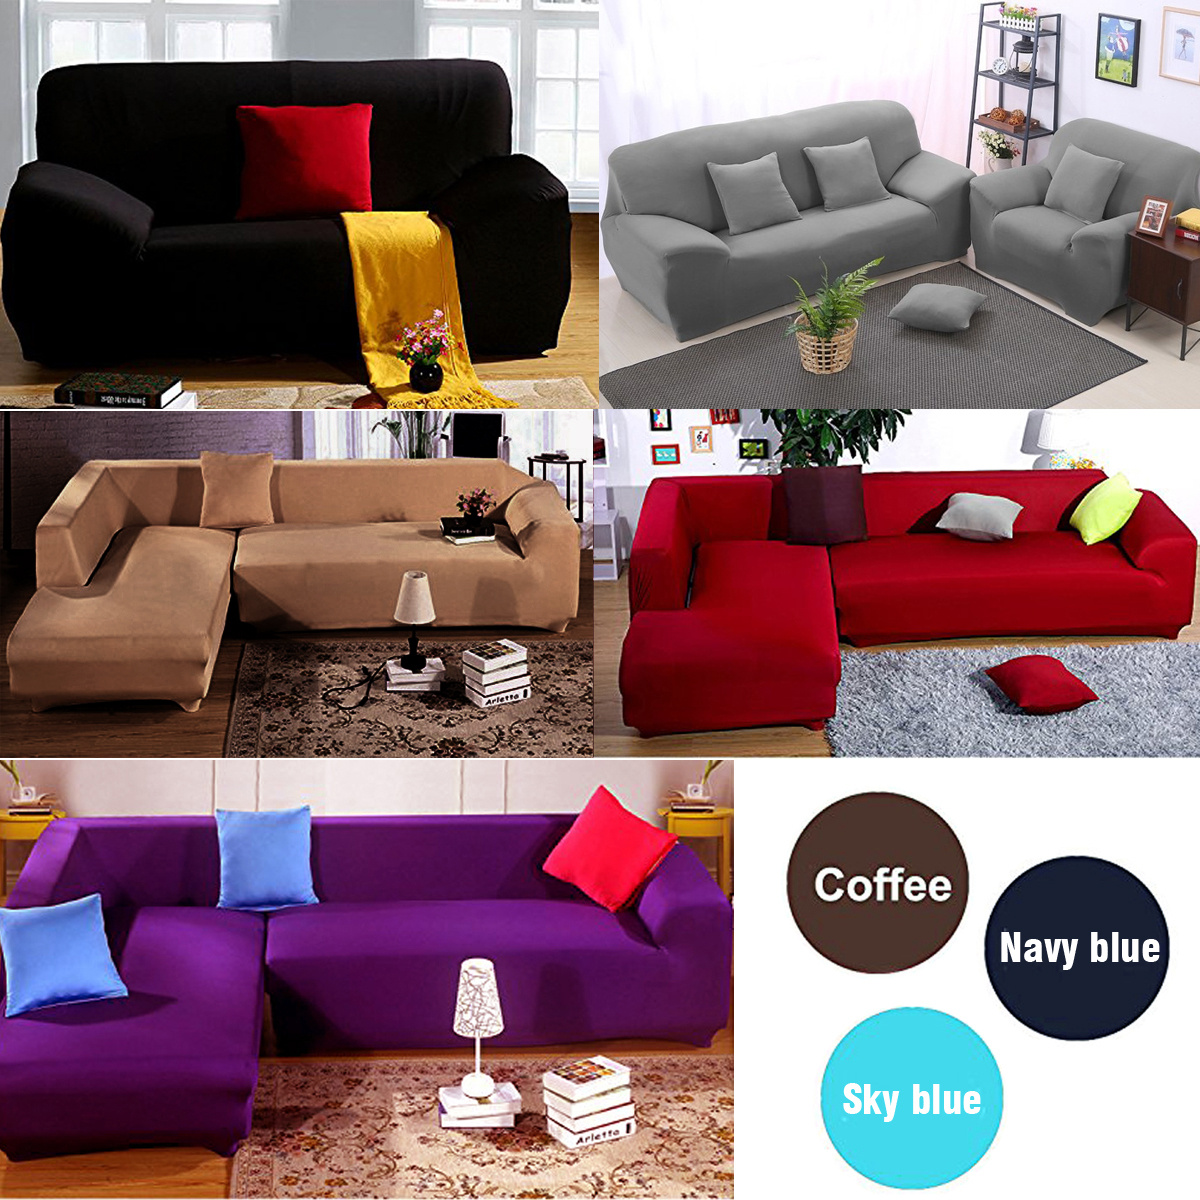 Sofa Couch Slip Over Easy Fit Stretch Covers Elastic Fabric Fit Settee Protector Ebay